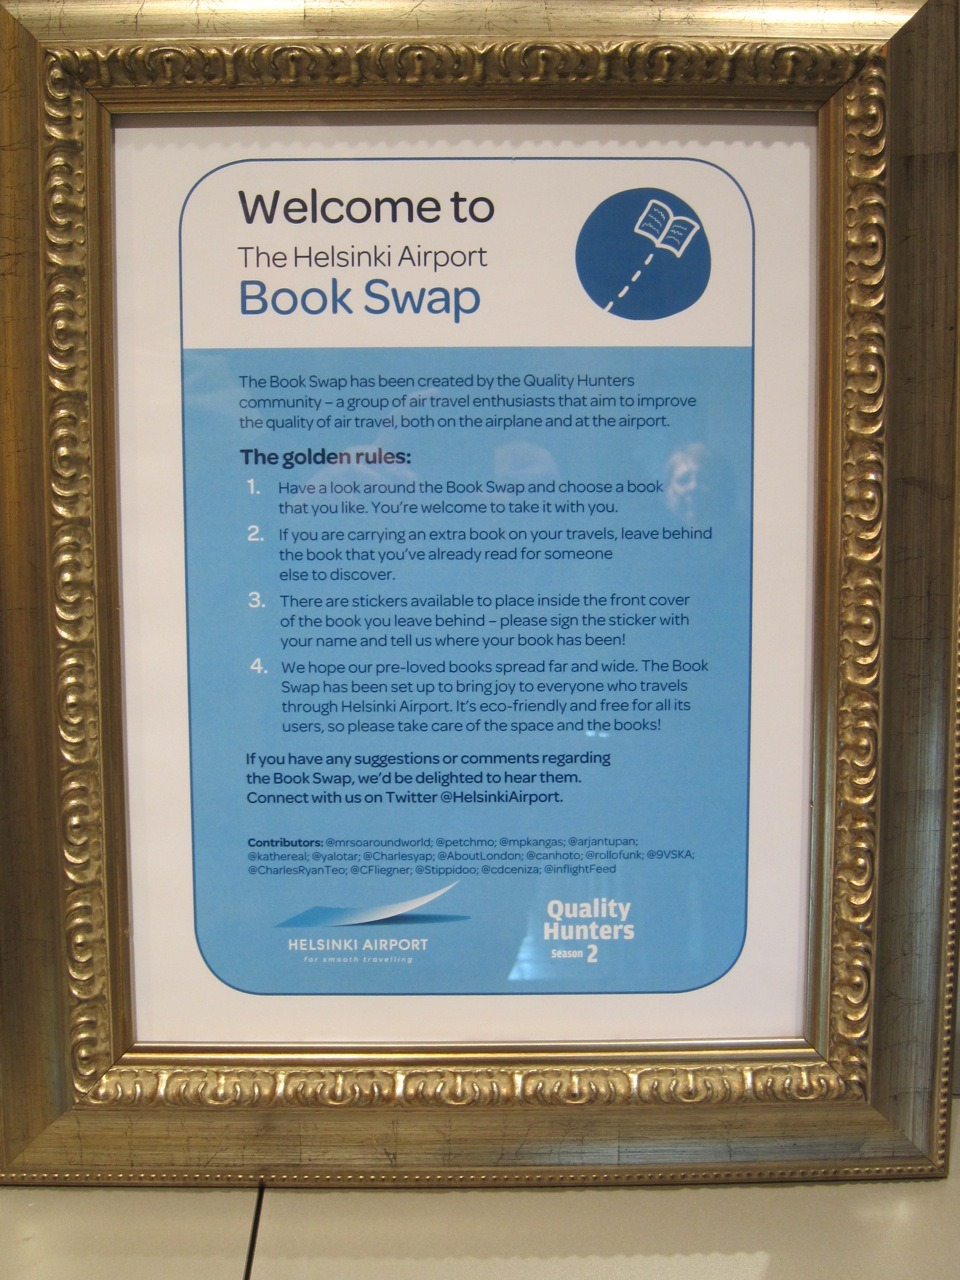 The Helsinki Airport Book Swap Golden Rules